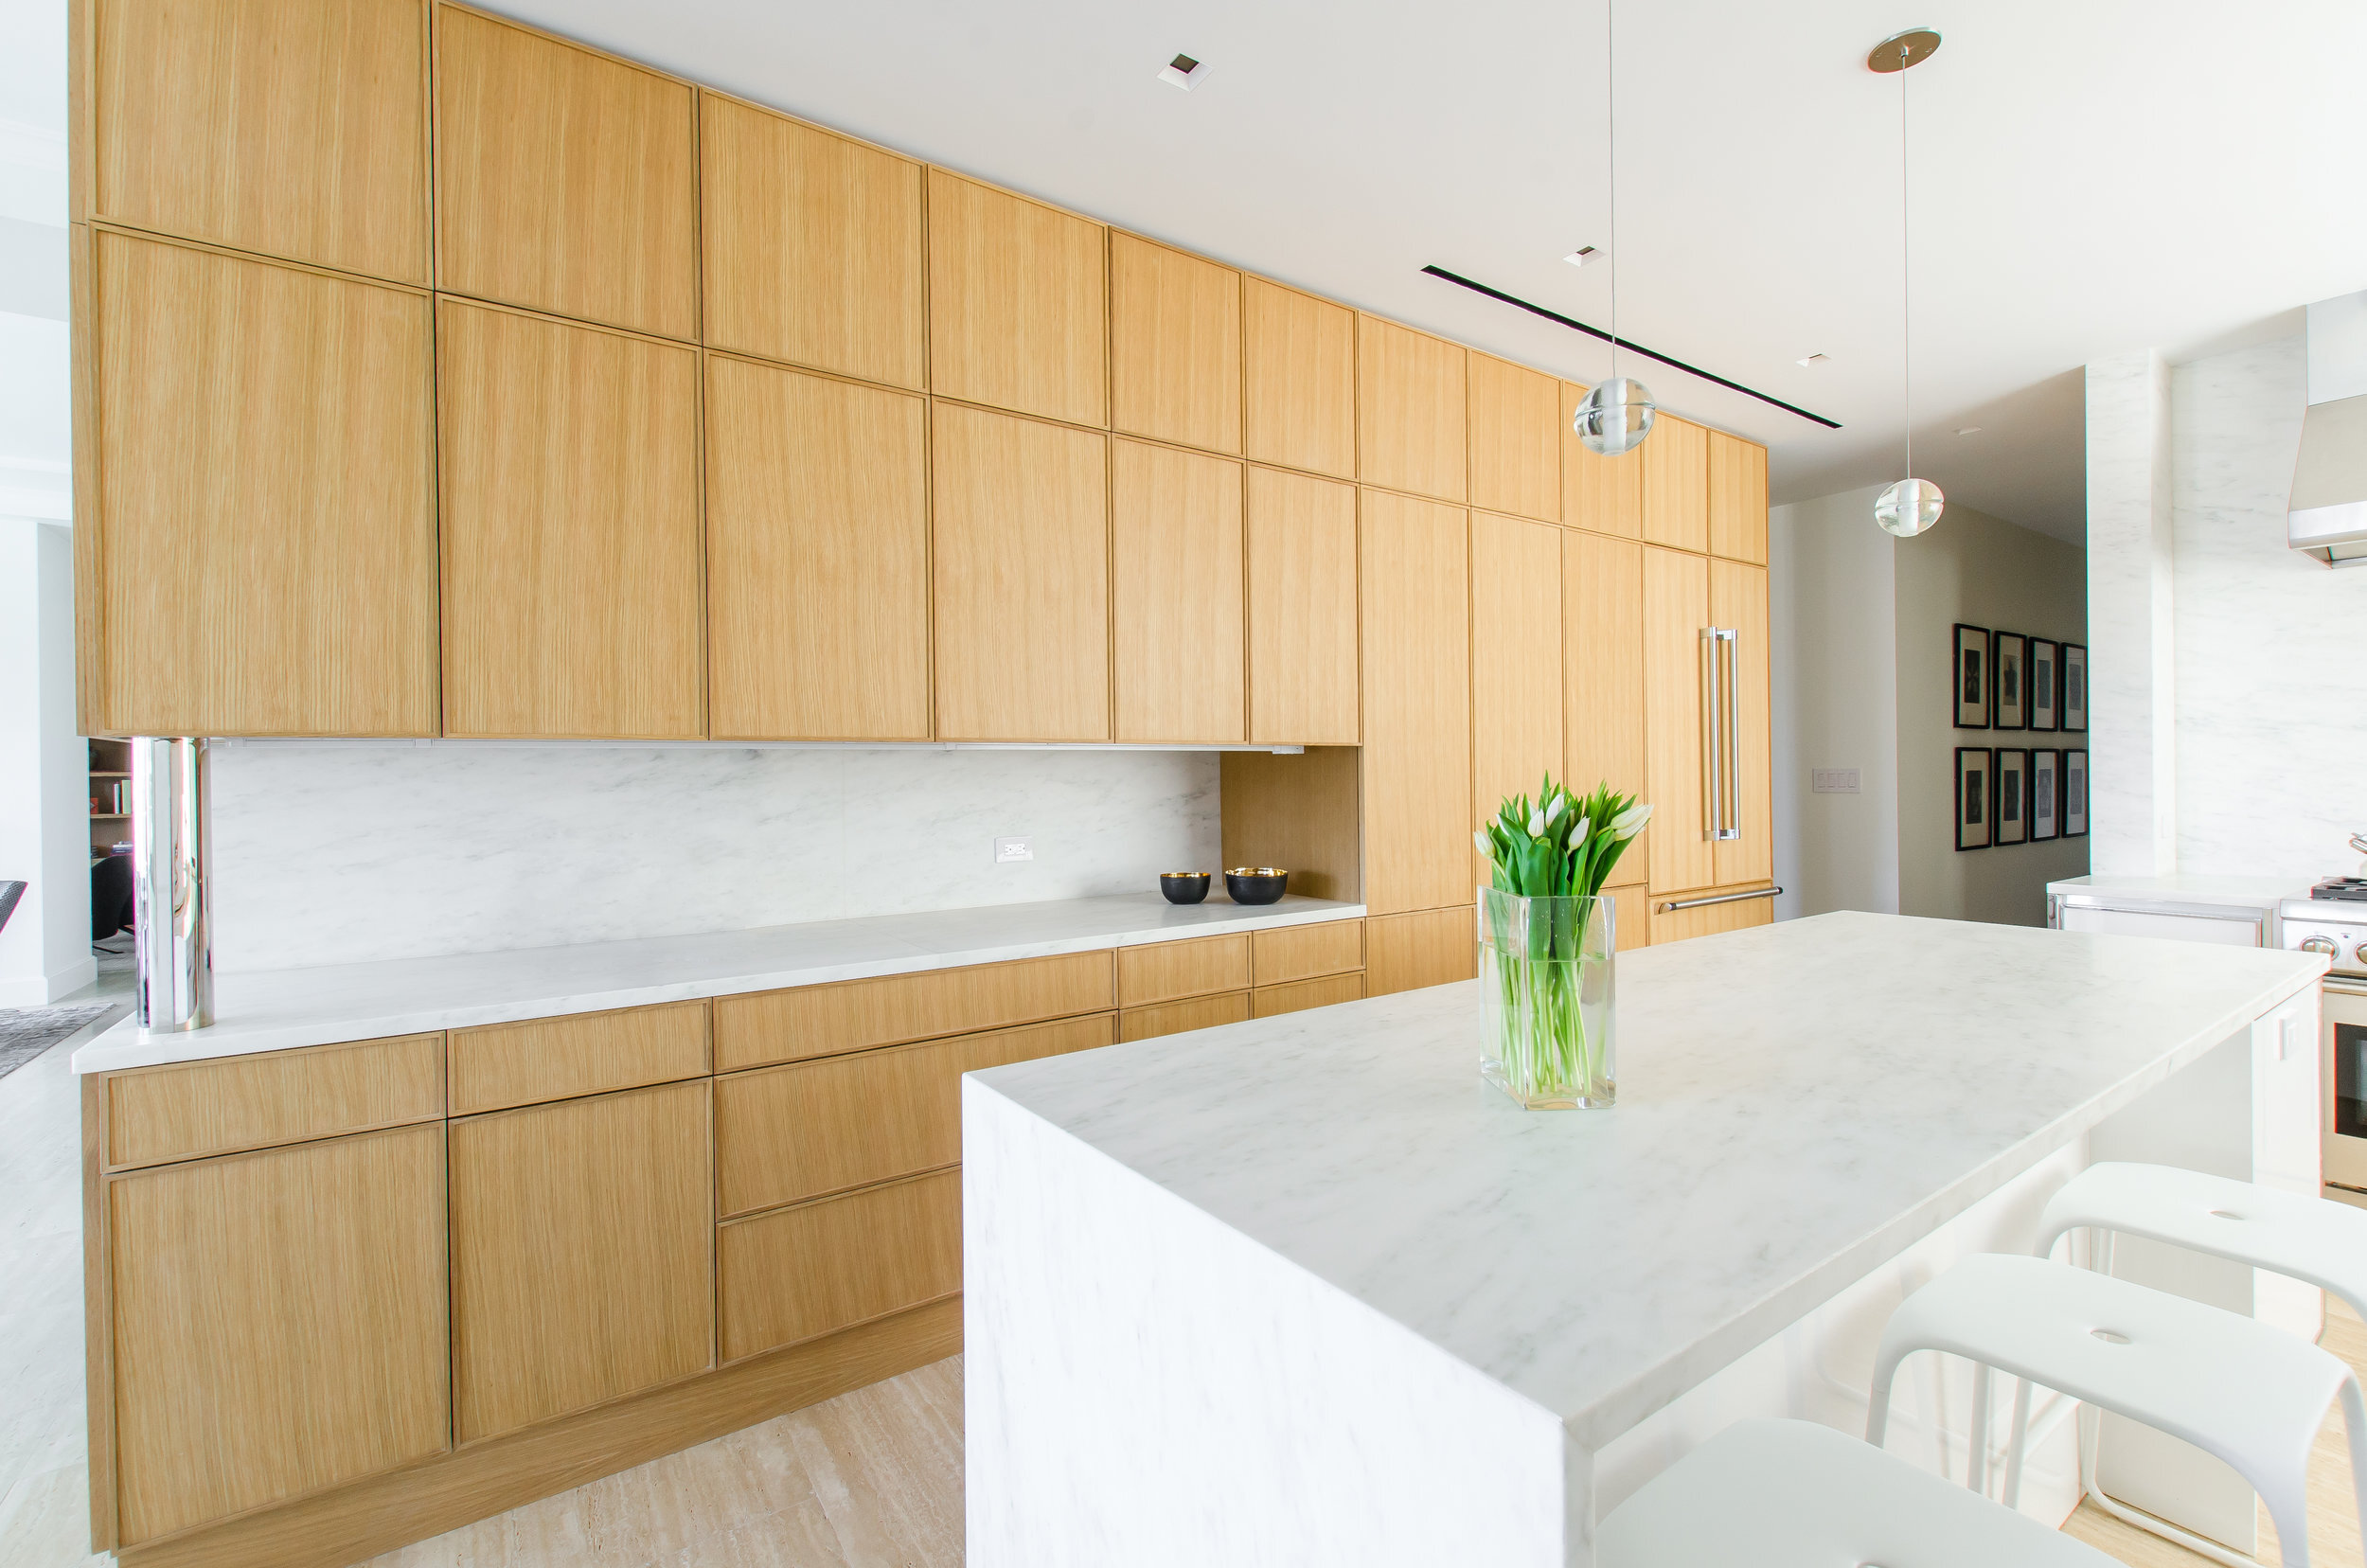 residential-projects-ParkAve-residence2-comp7.jpg